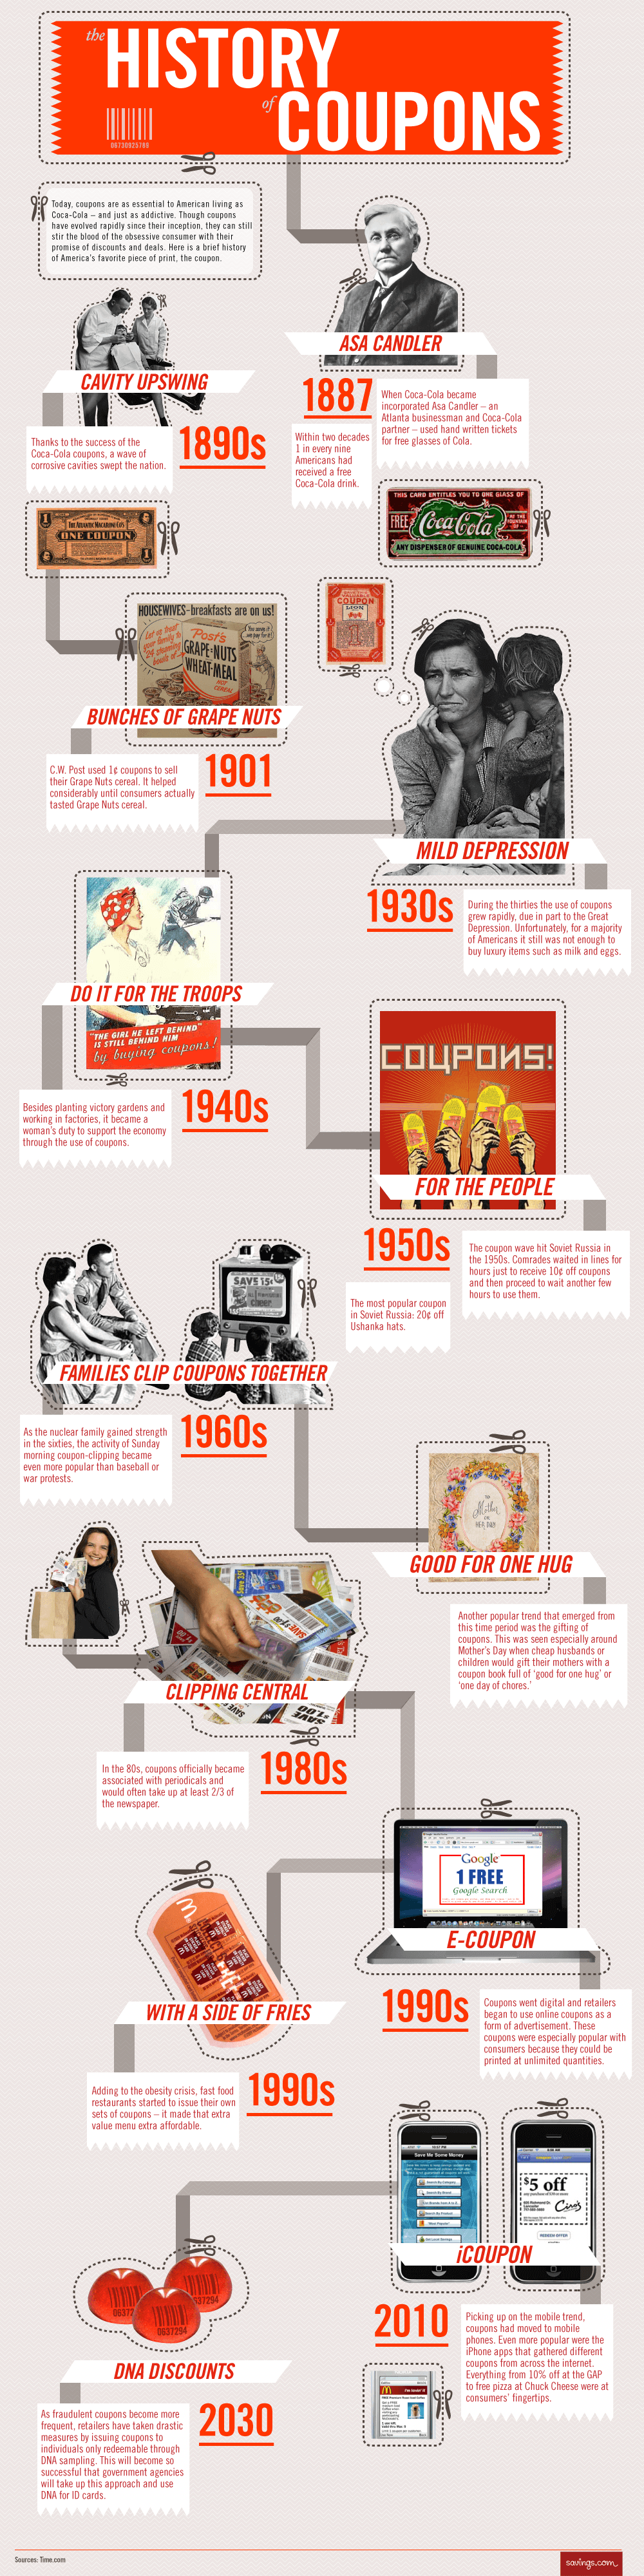 History of Coupons Infographic